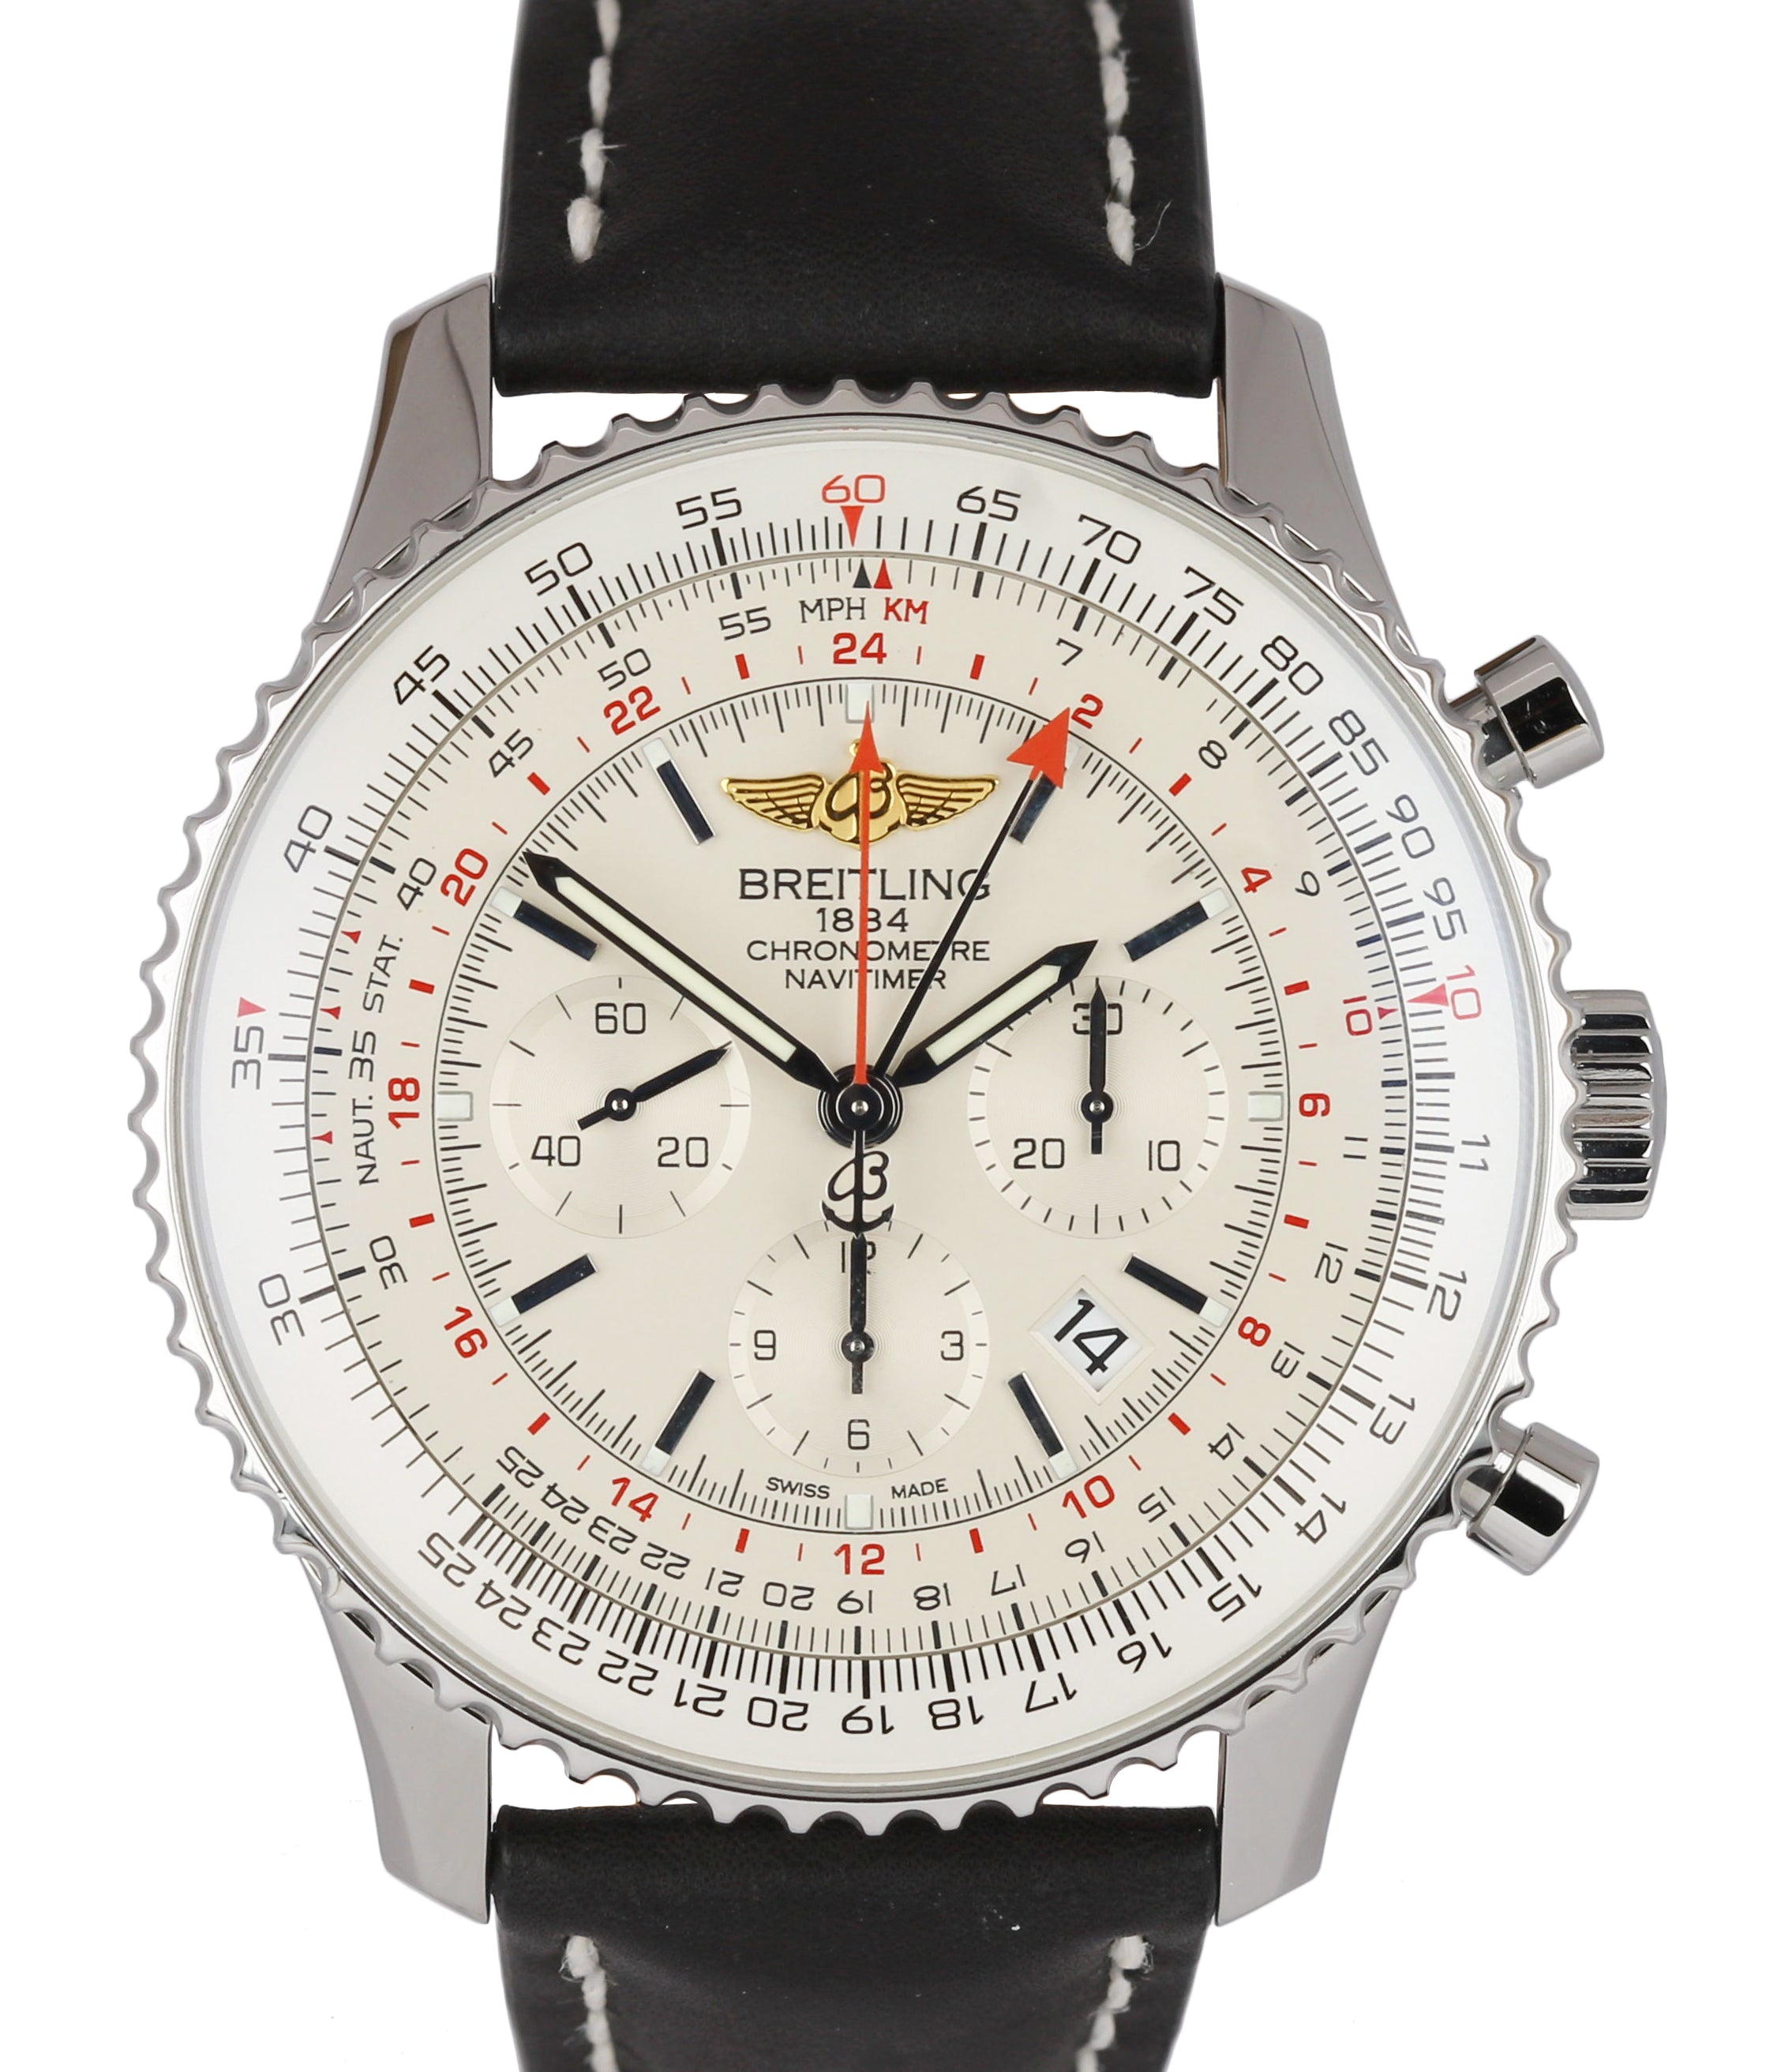 2019 Breitling Navitimer Navi GMT Stainless Cream 48mm AB0441 Chronograph Watch